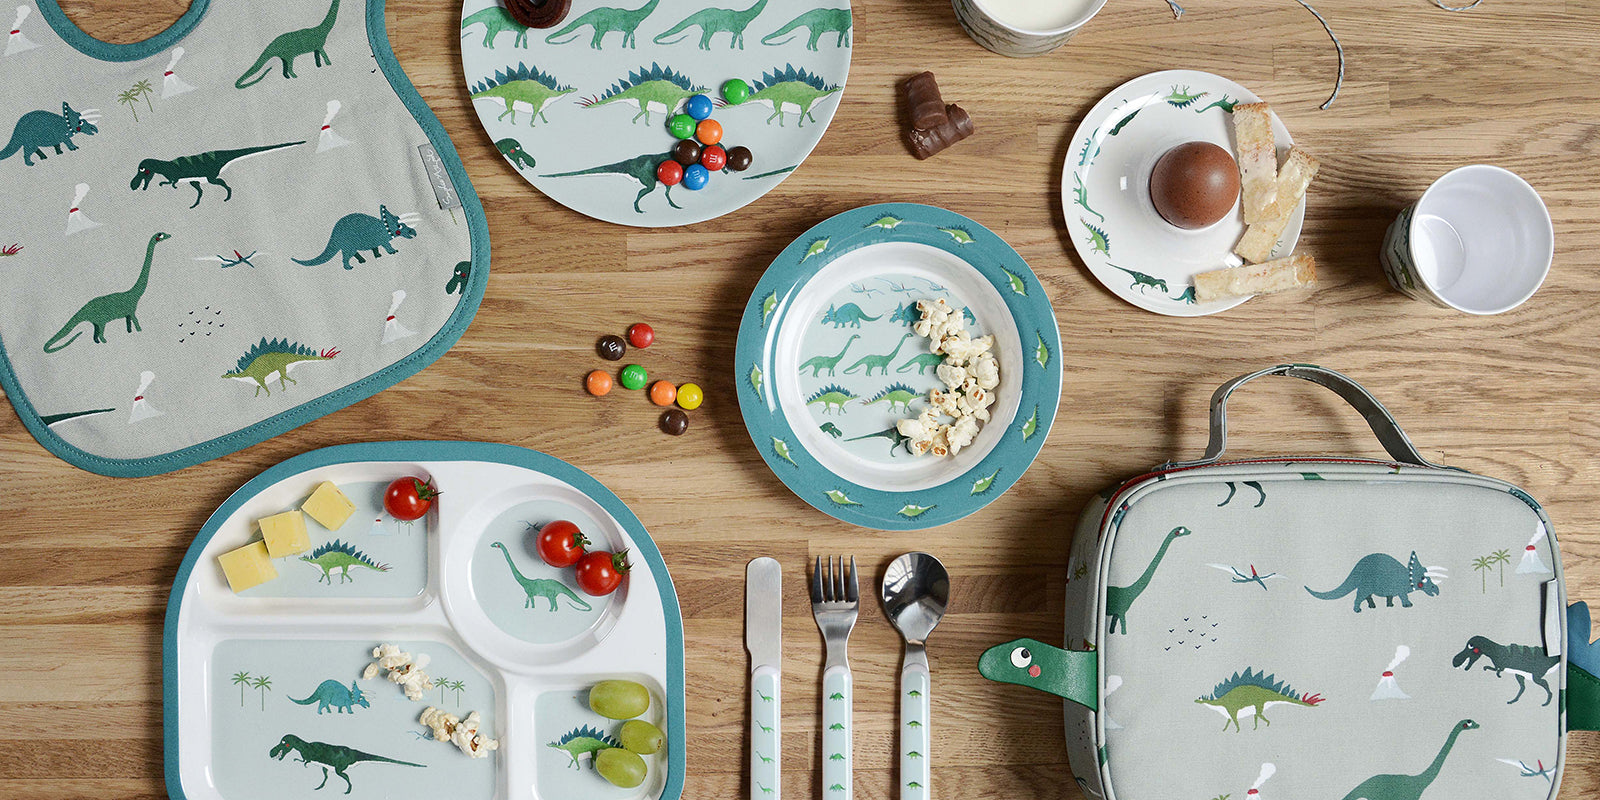 Kids Mealtimes by Sophie Allport